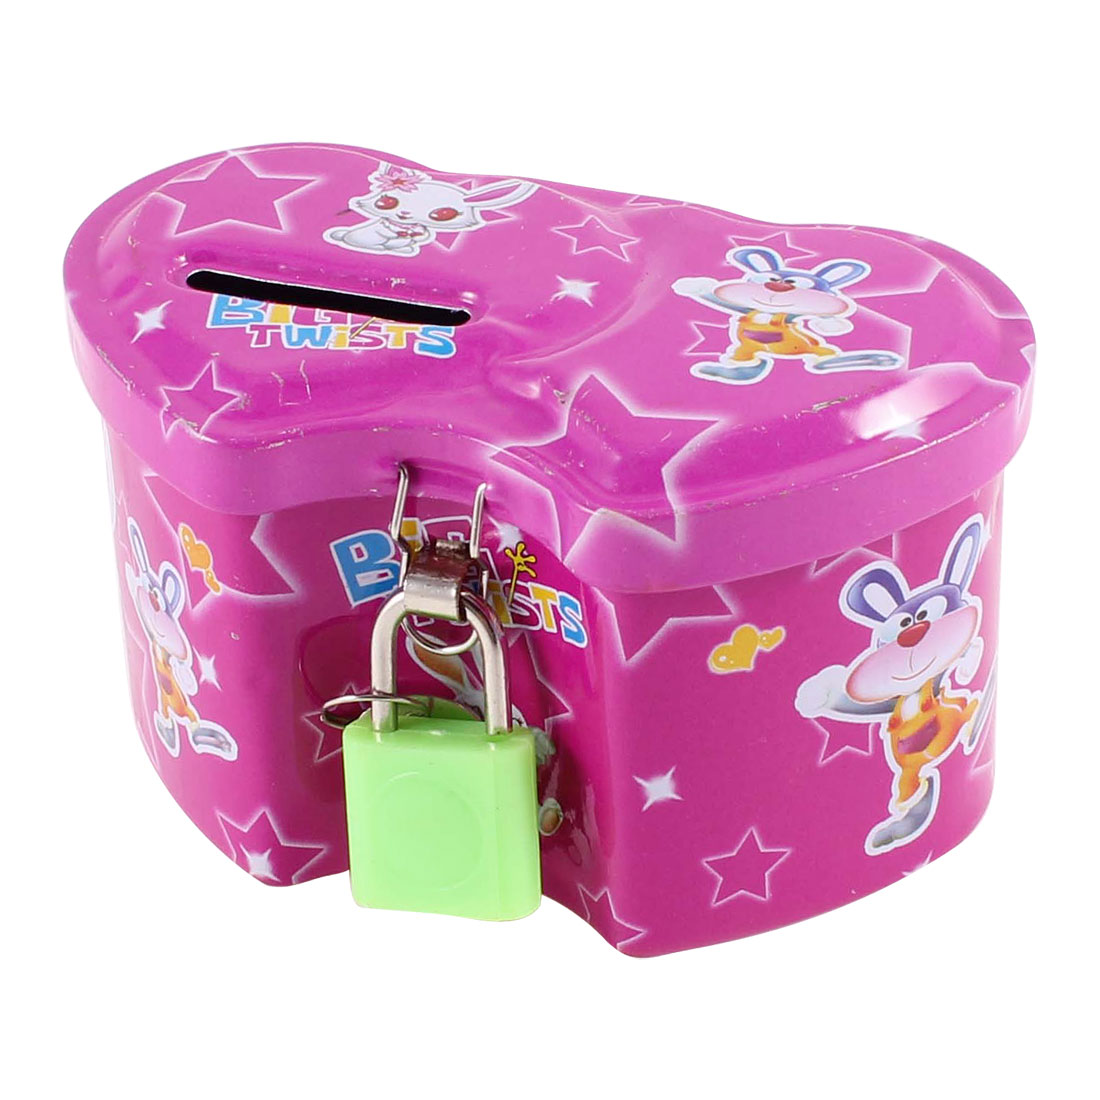 Household Cartoon Rabbit Pattern Coin Saving Money Box Piggy Bank Fuchsia